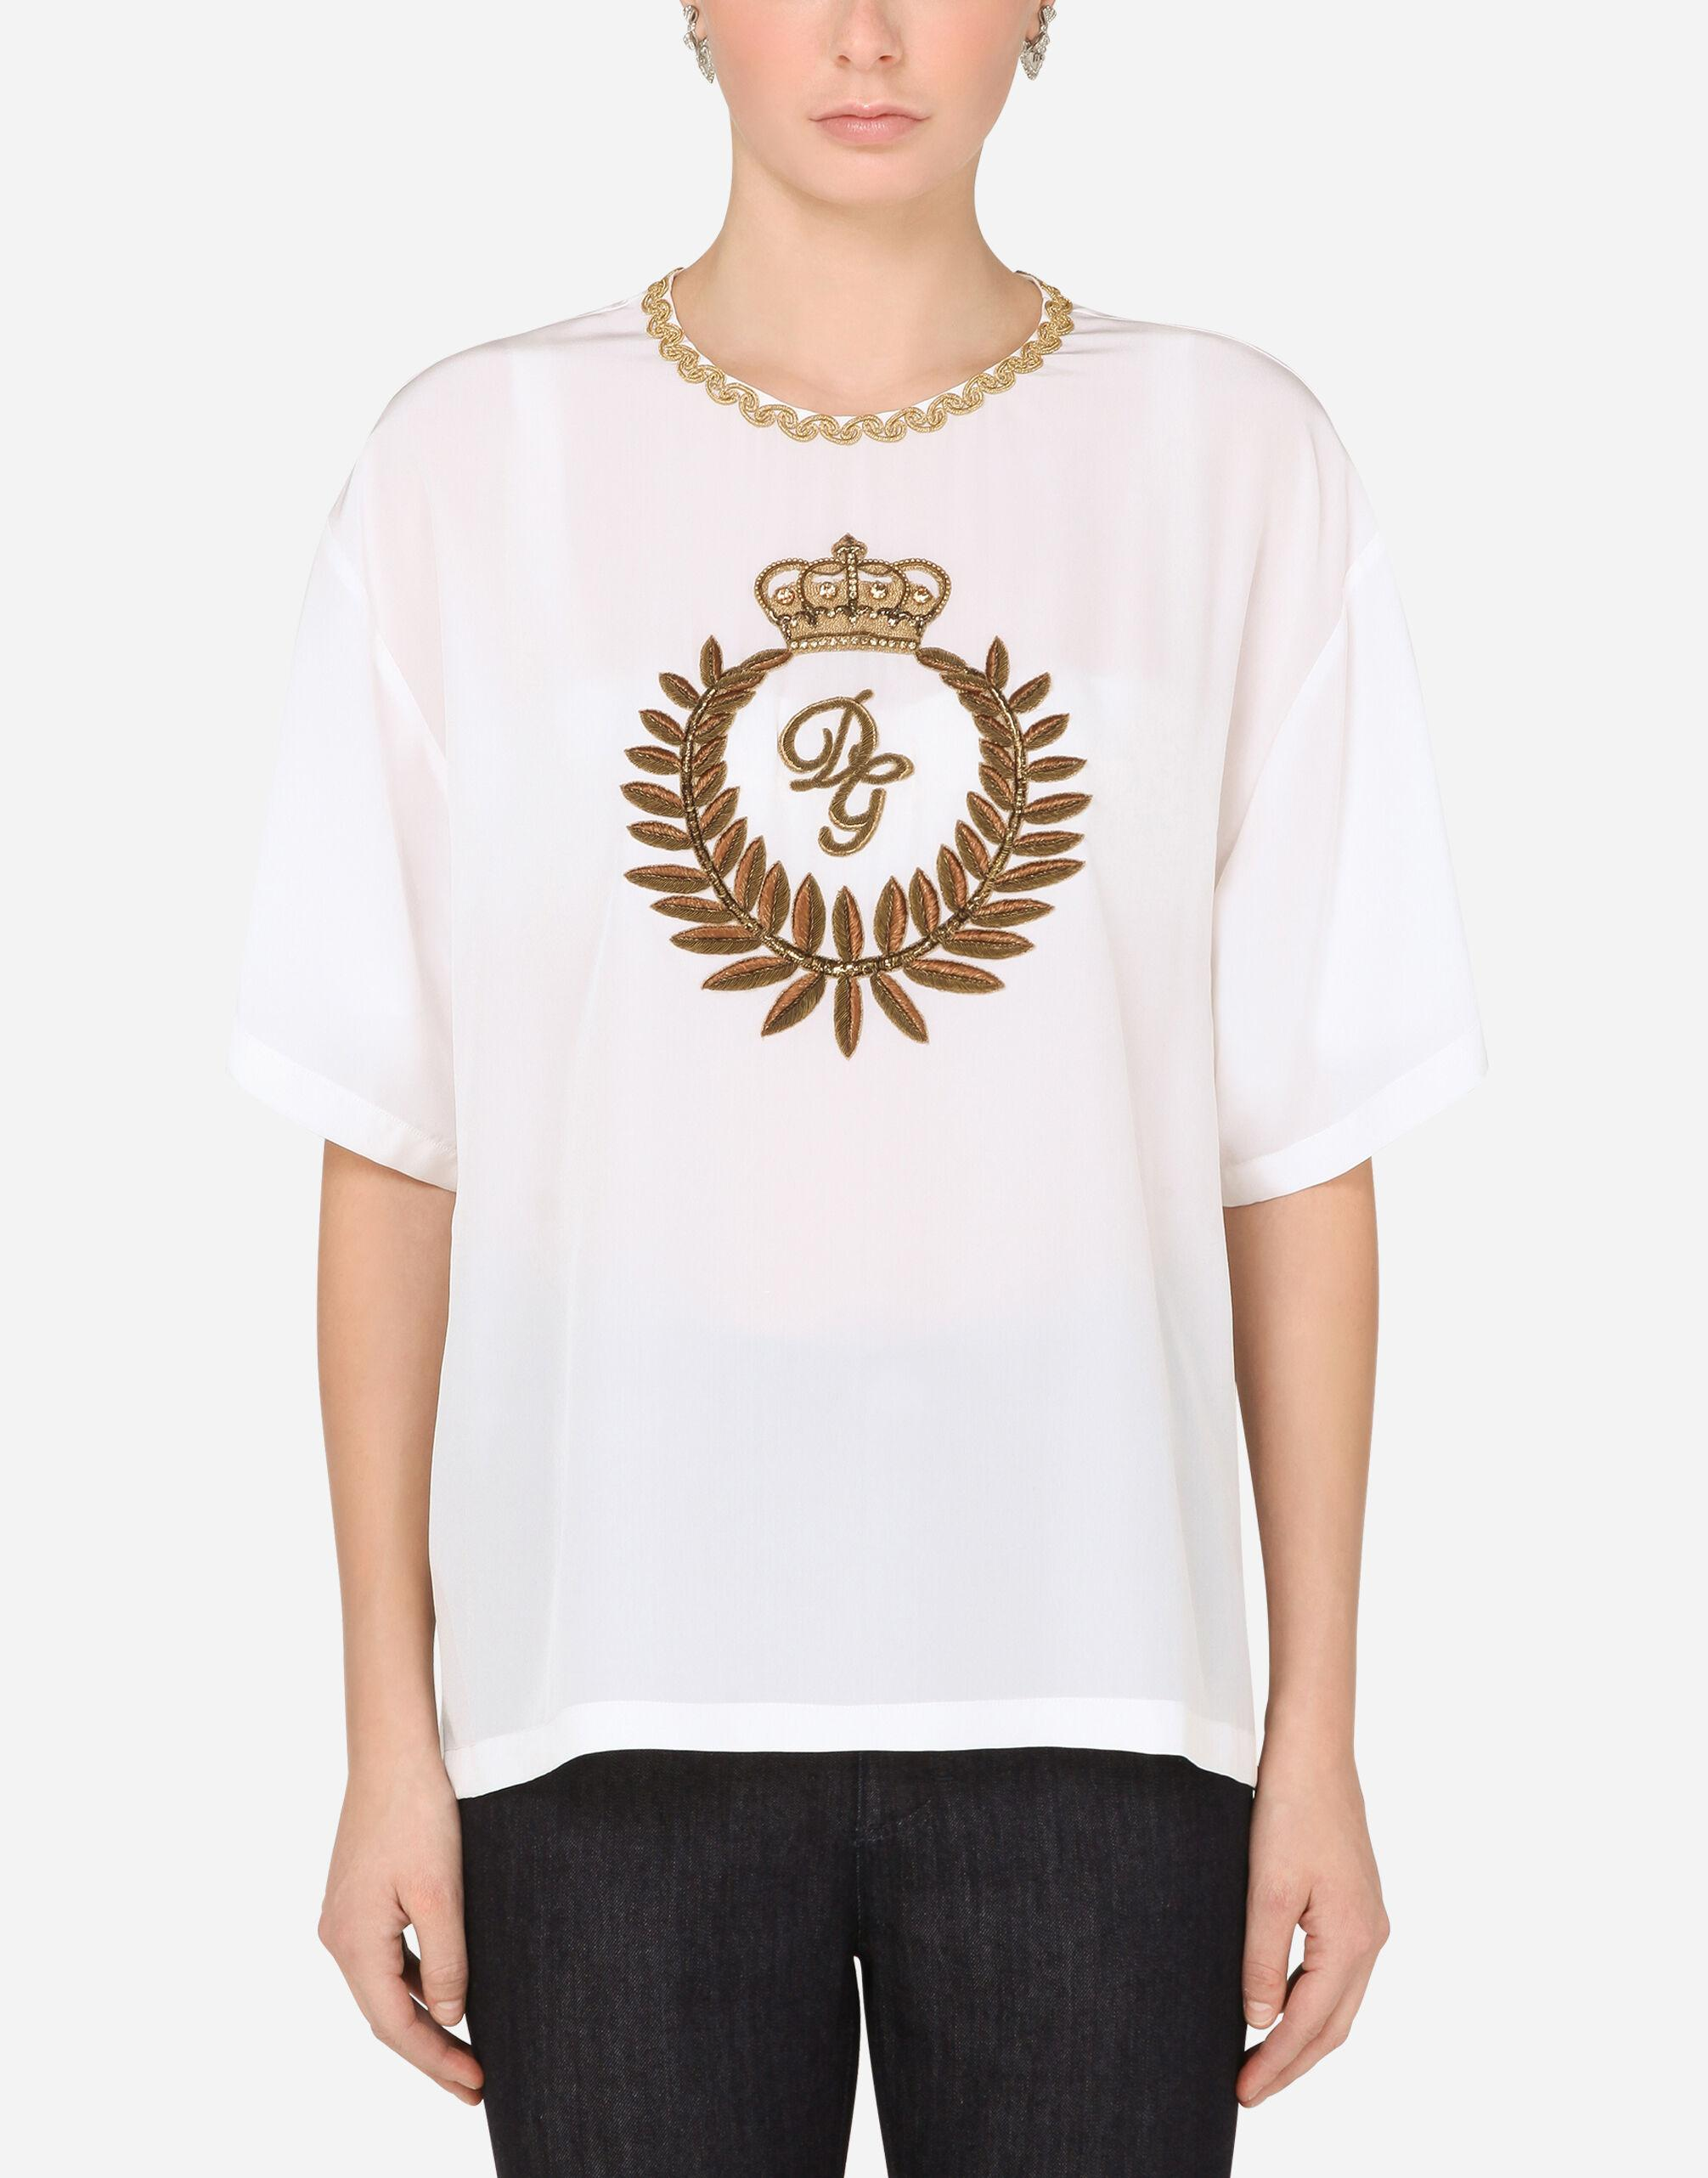 Crepe de chine blouse with laurel embroidery